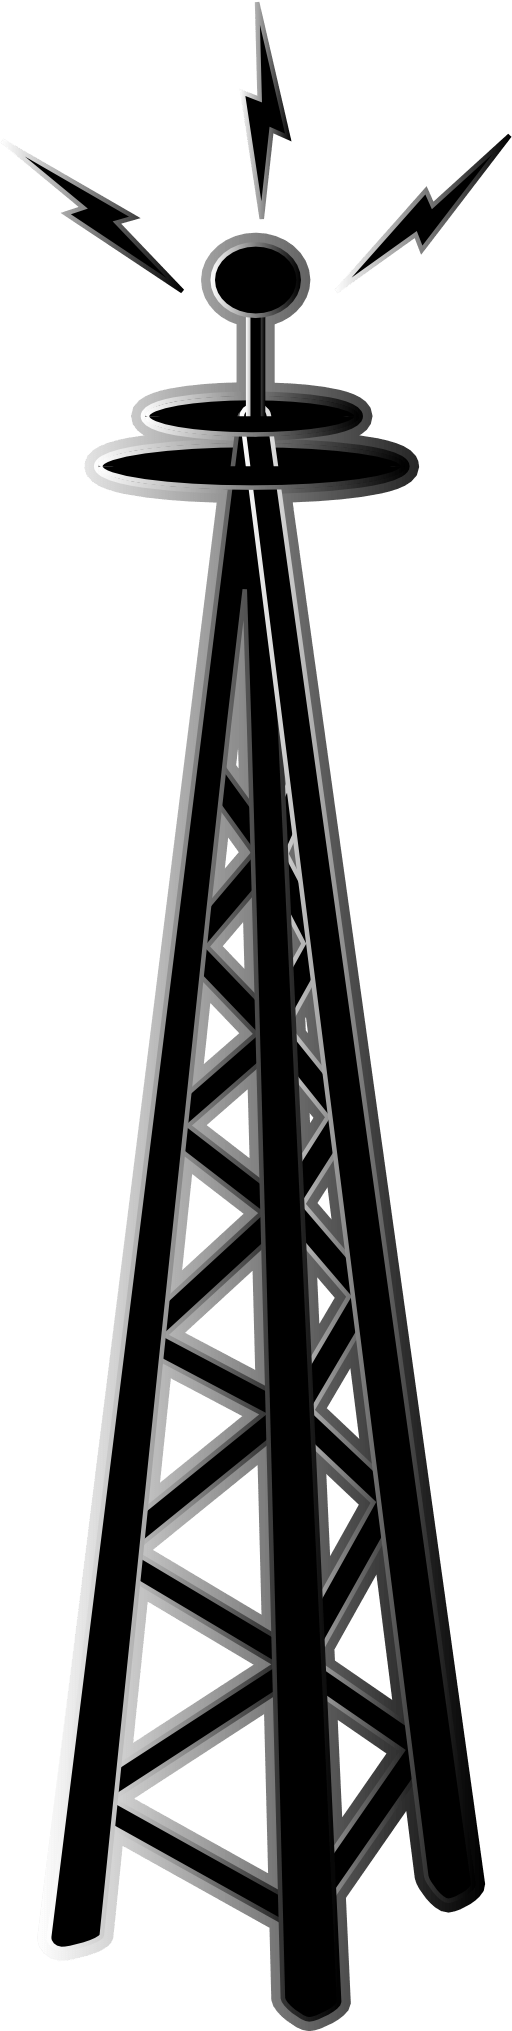 Electric icon png . Tower clipart transmission line tower